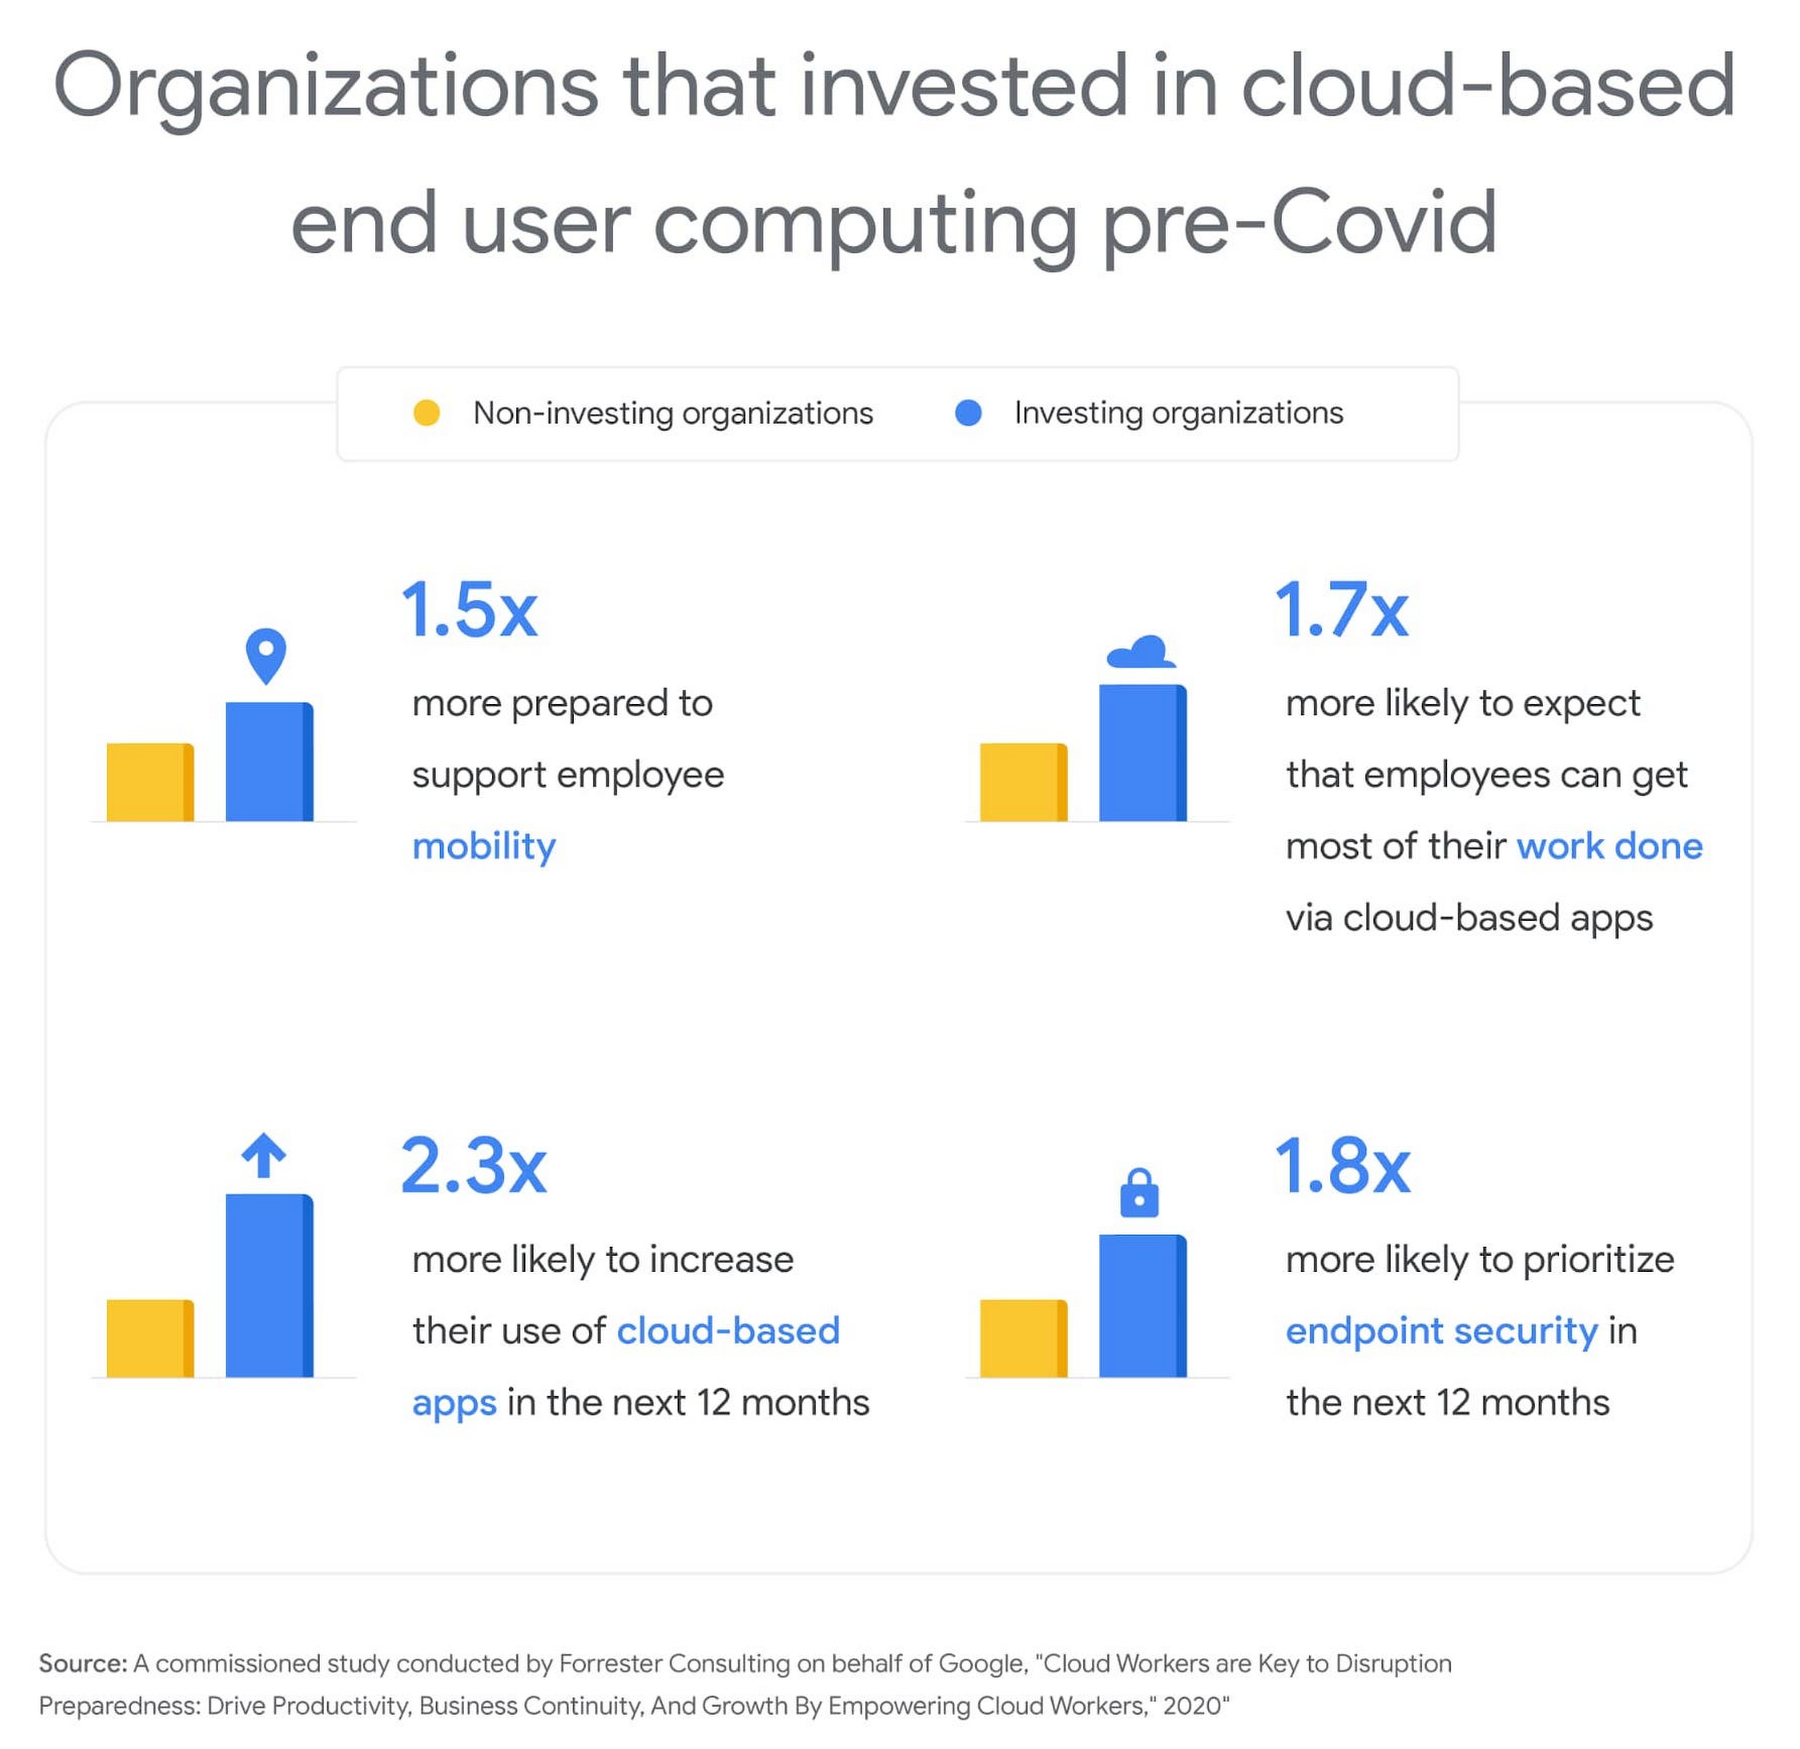 orgs invested in cloud-based end user.jpg